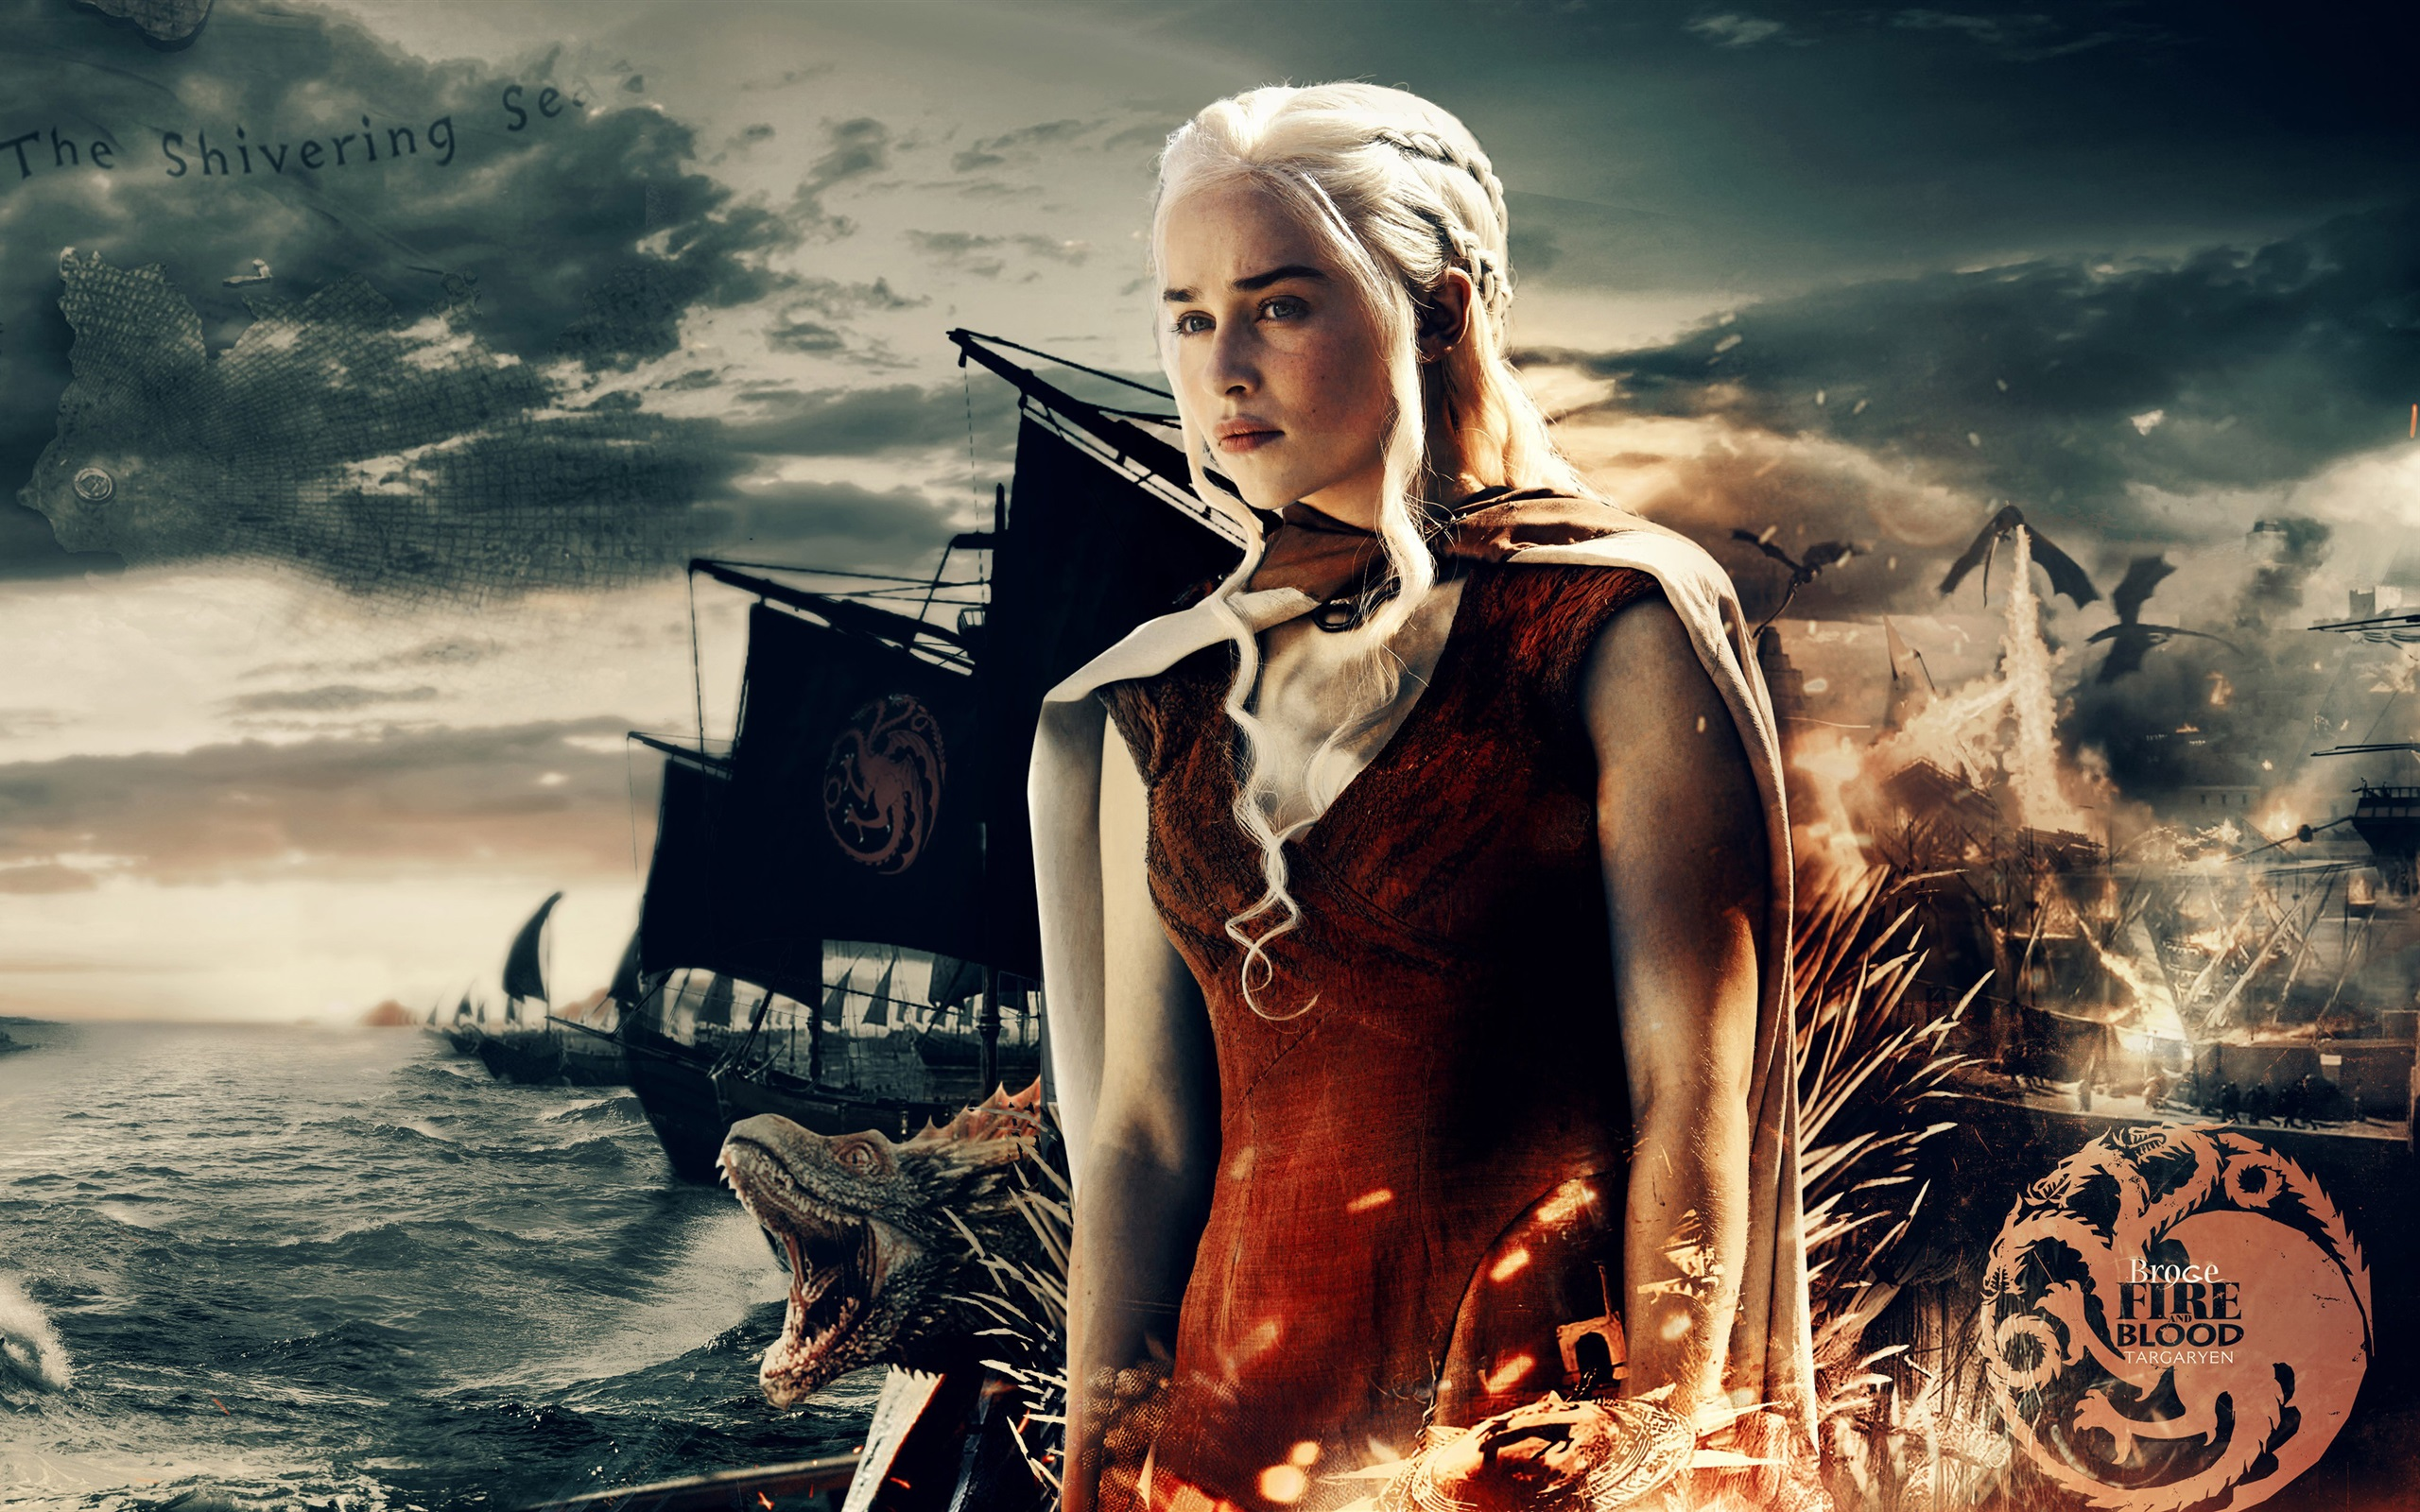 Wallpaper Game Of Thrones A Song Of Ice And Fire Tv Series